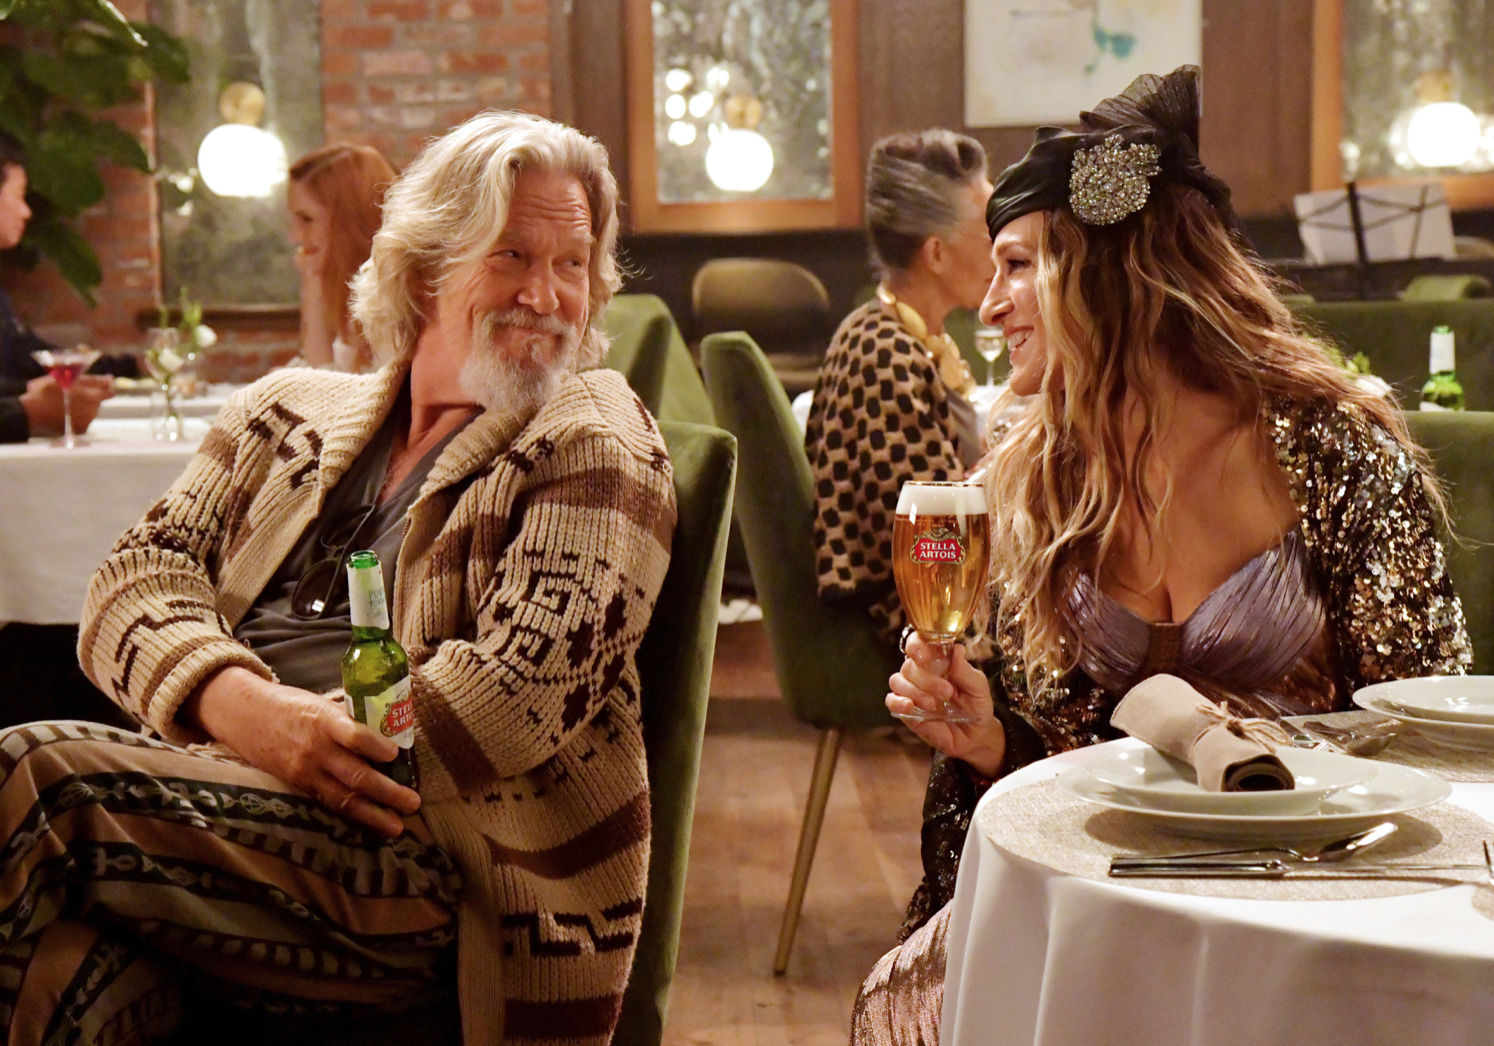 Sarah Jessics Parker as Carrie in Stella Artois Ad